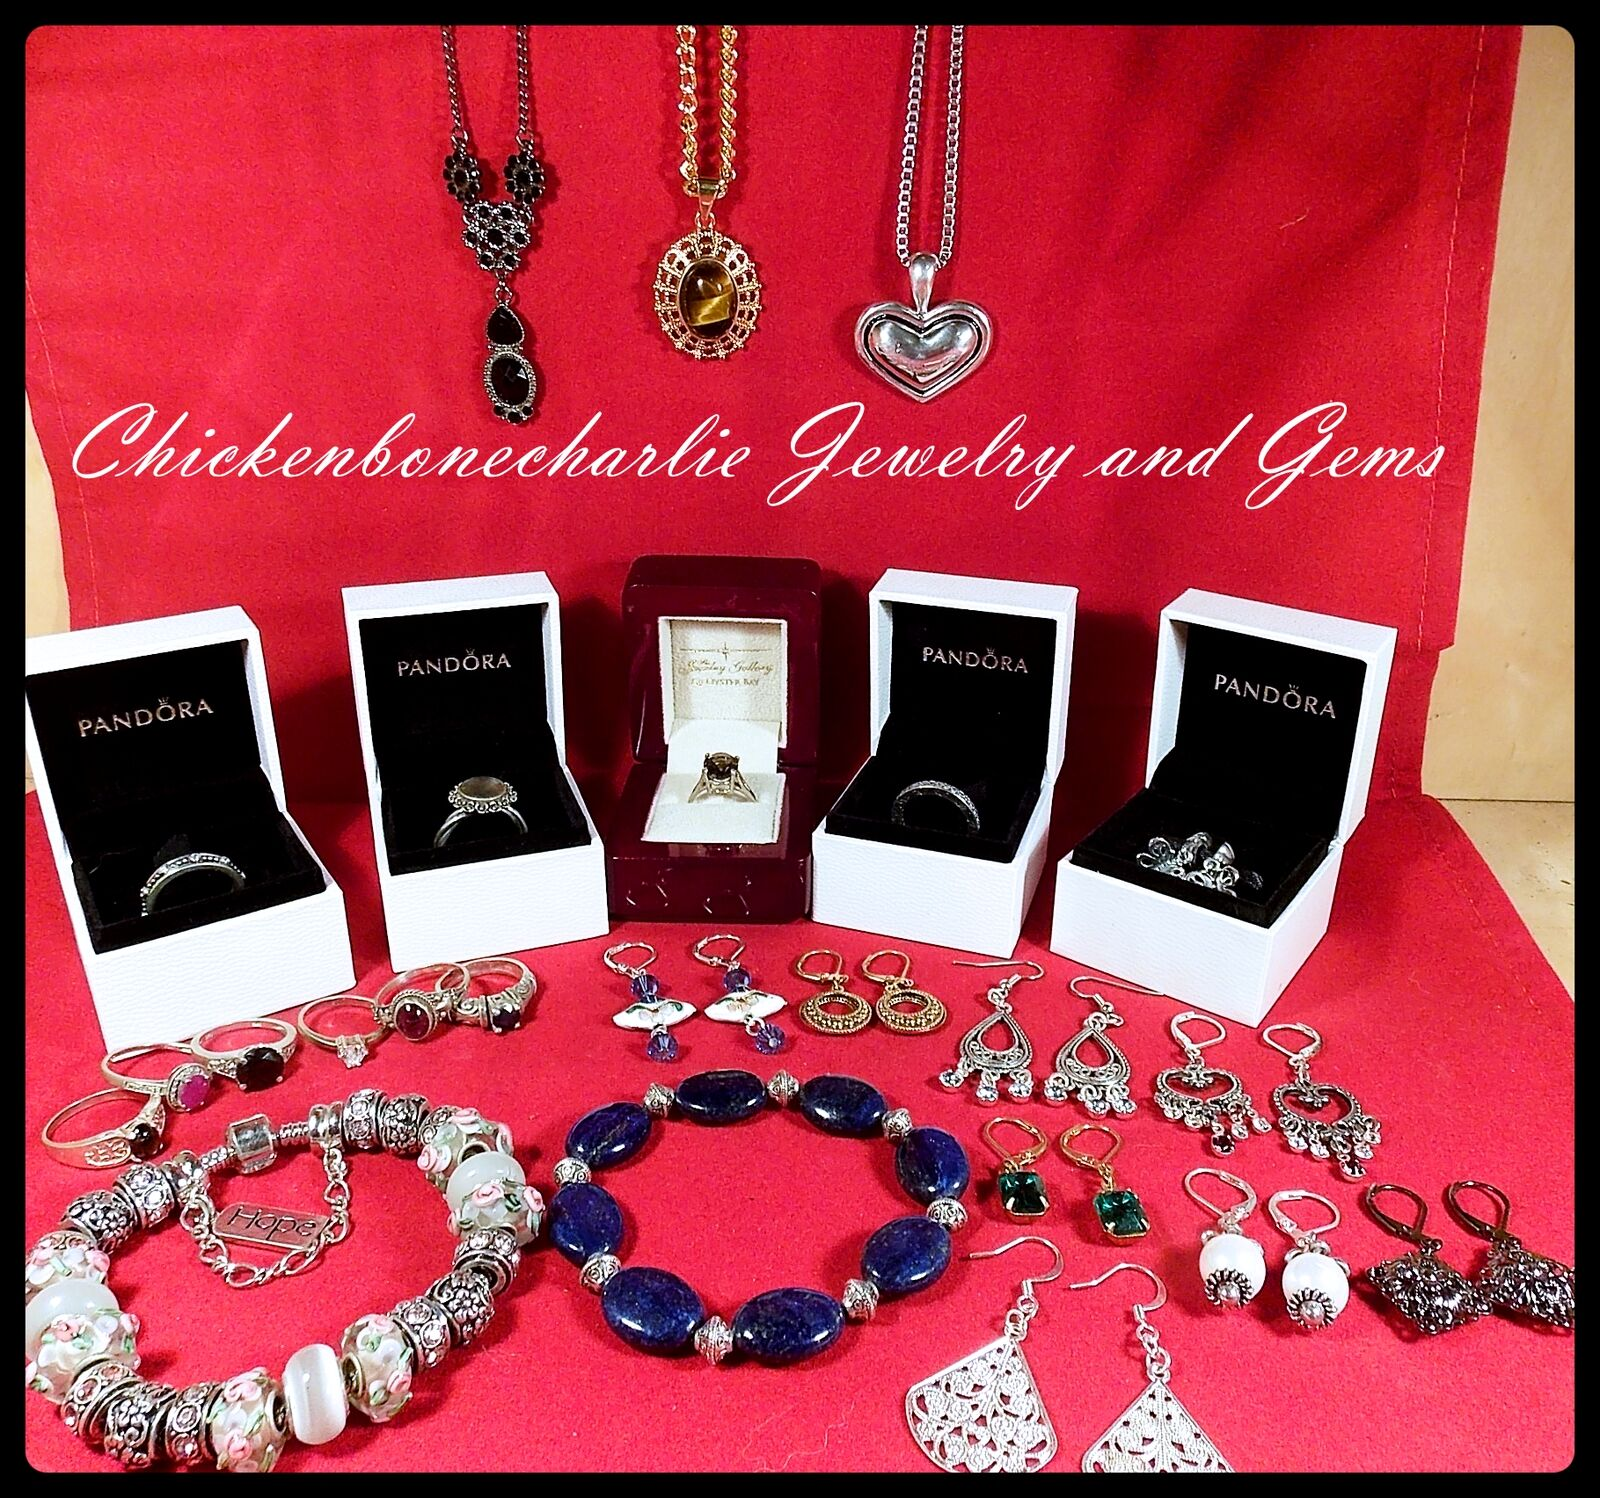 Chickenbonecharlie Jewelry and Gems